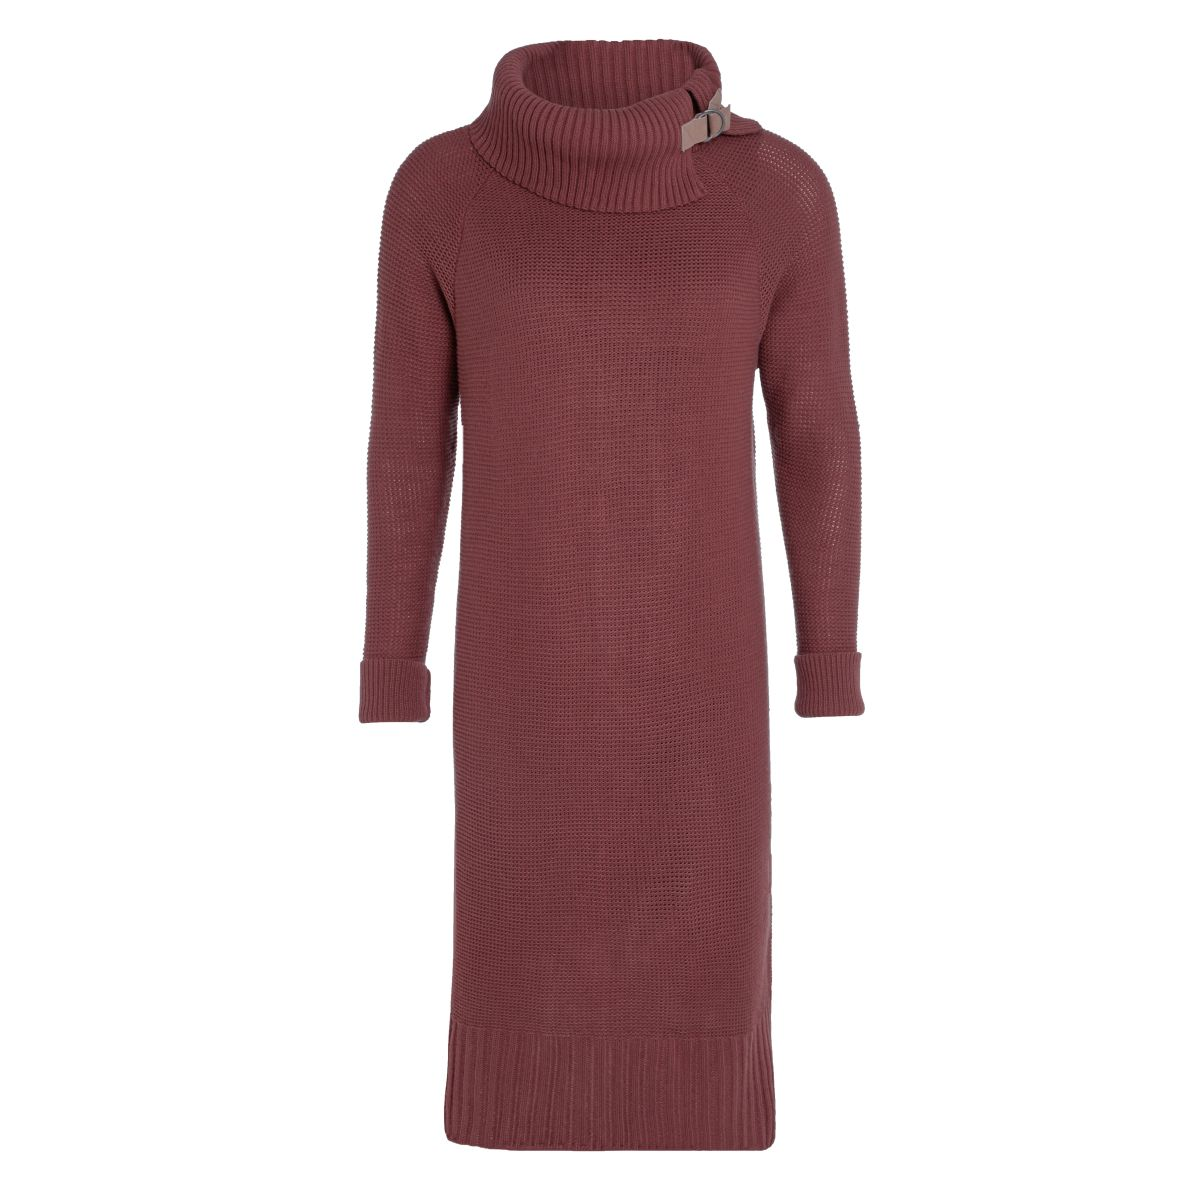 jamie knitted dress stone red 3638